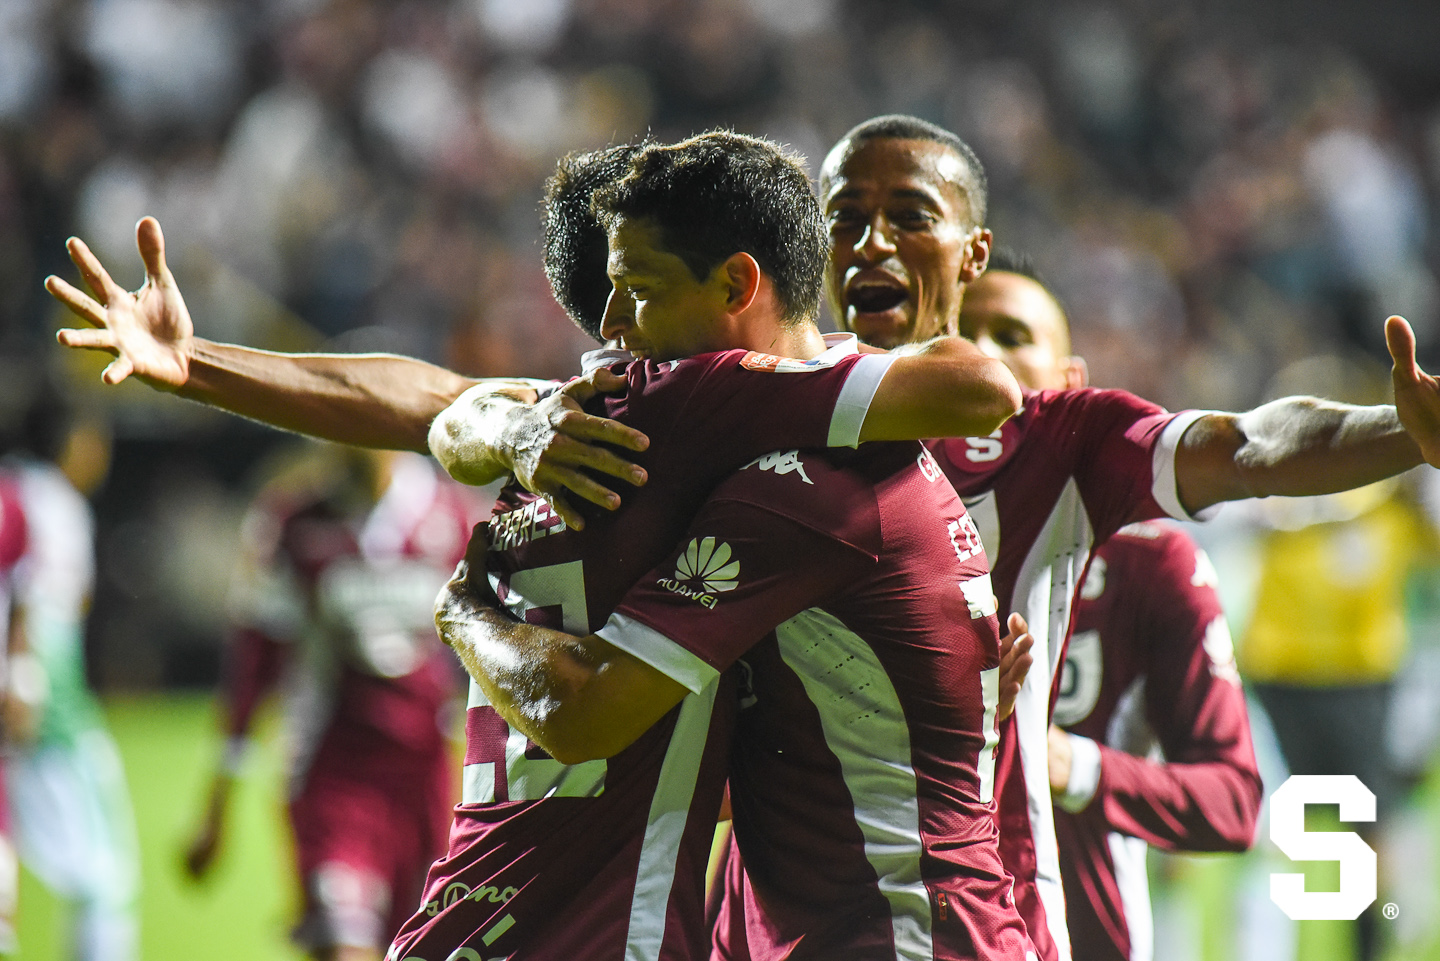 Saprissa 6-0 CD Dragón